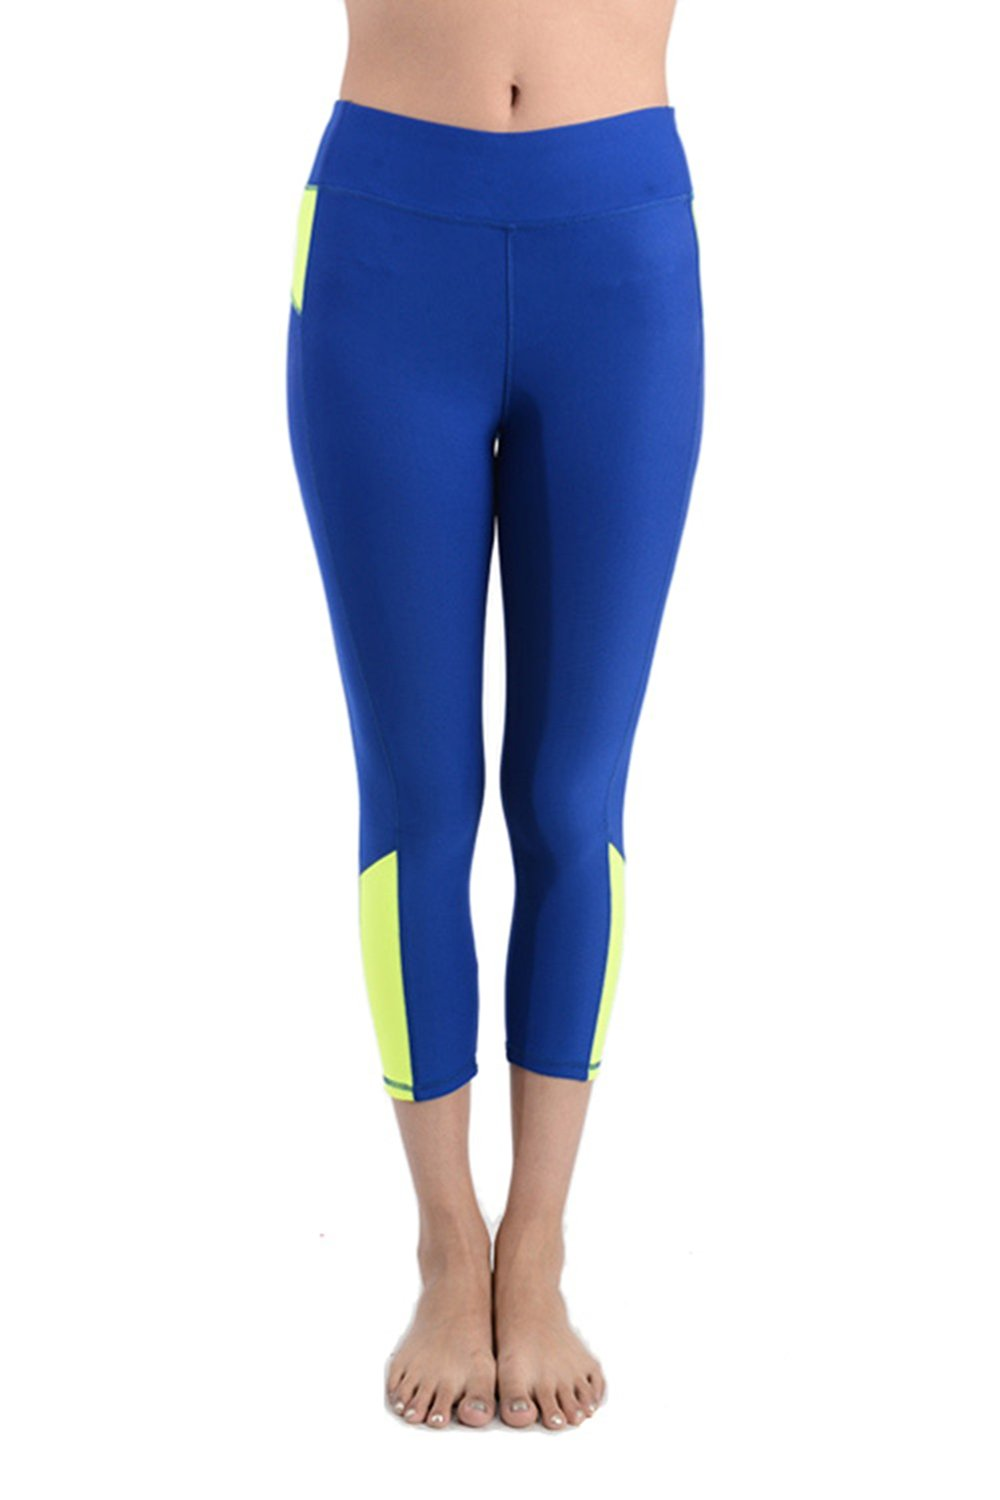 0282859b30ed2 Get Quotations · Tough Cookie's Women's Scuba Inspired Yoga Pants FBA